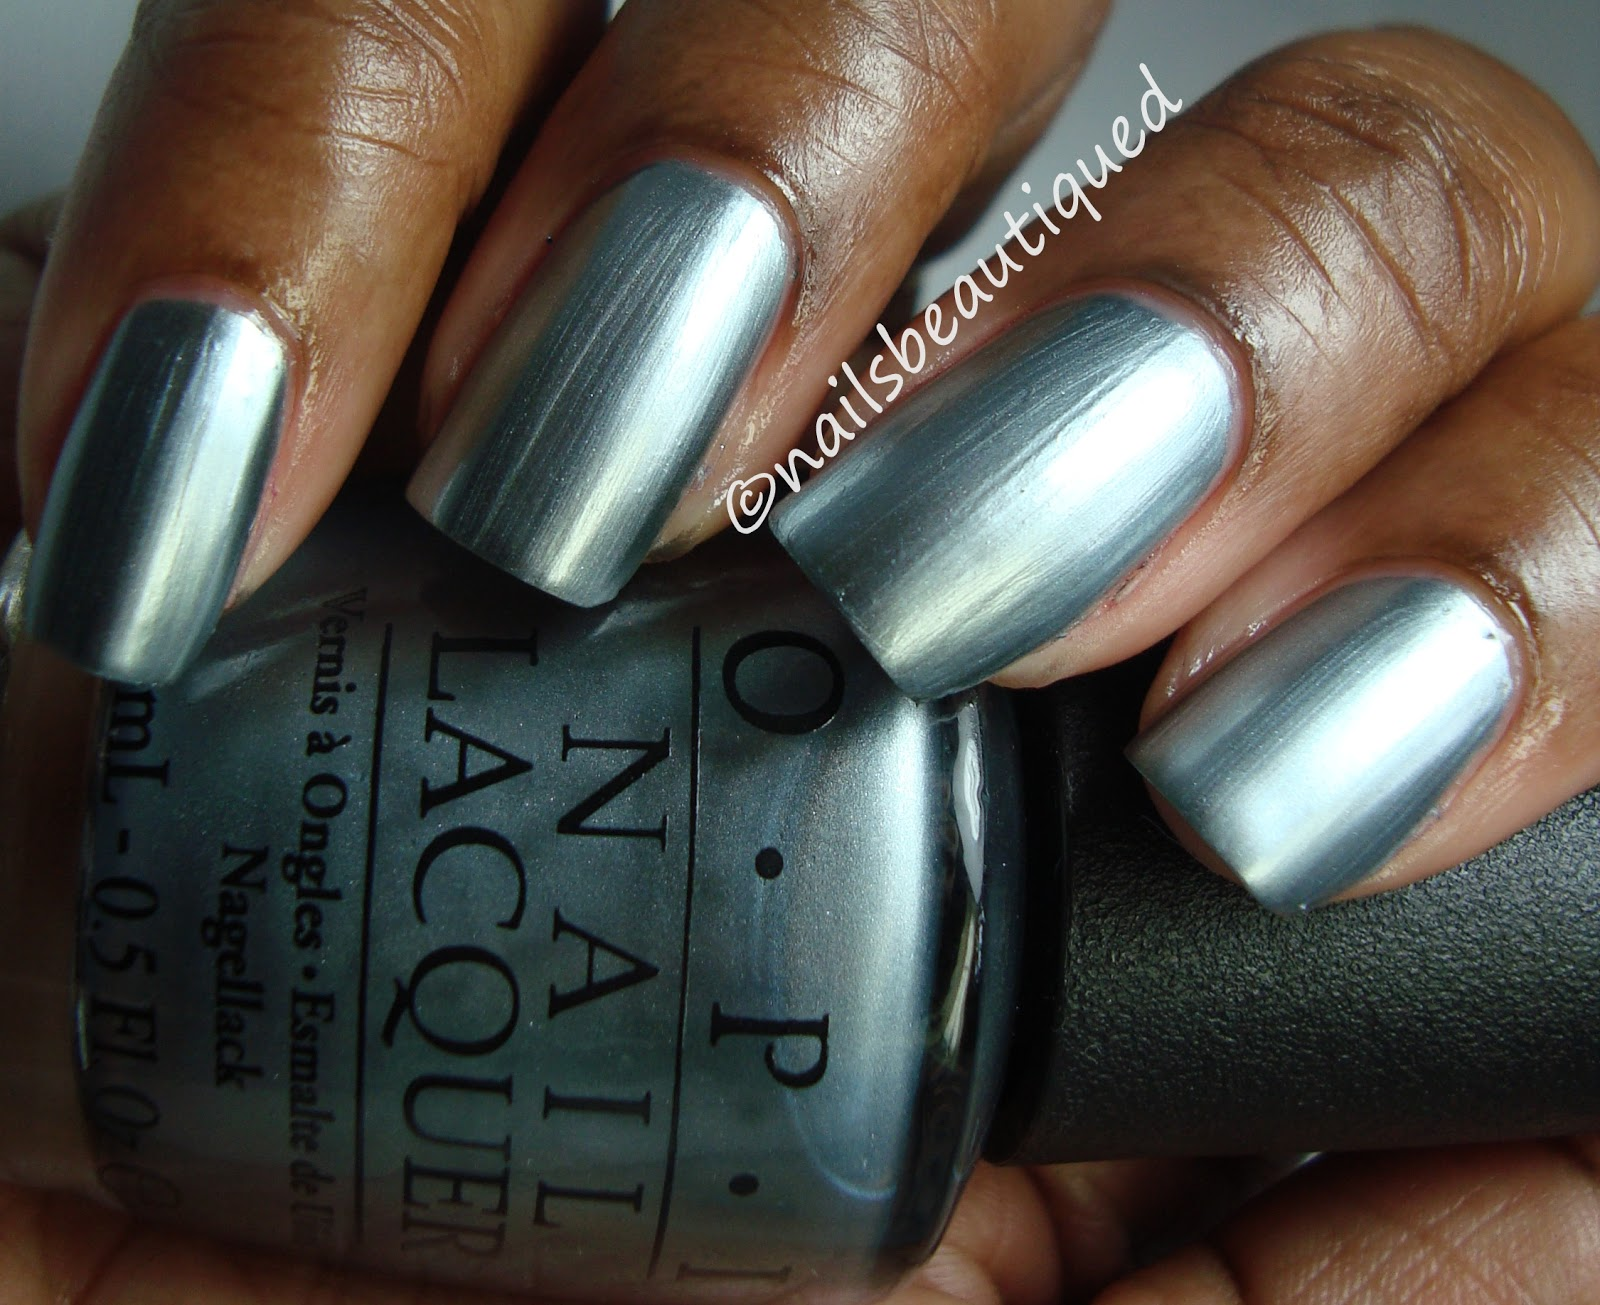 unbitten polish: OPI Skyfall Bond 007 Collection, Swatches and Review